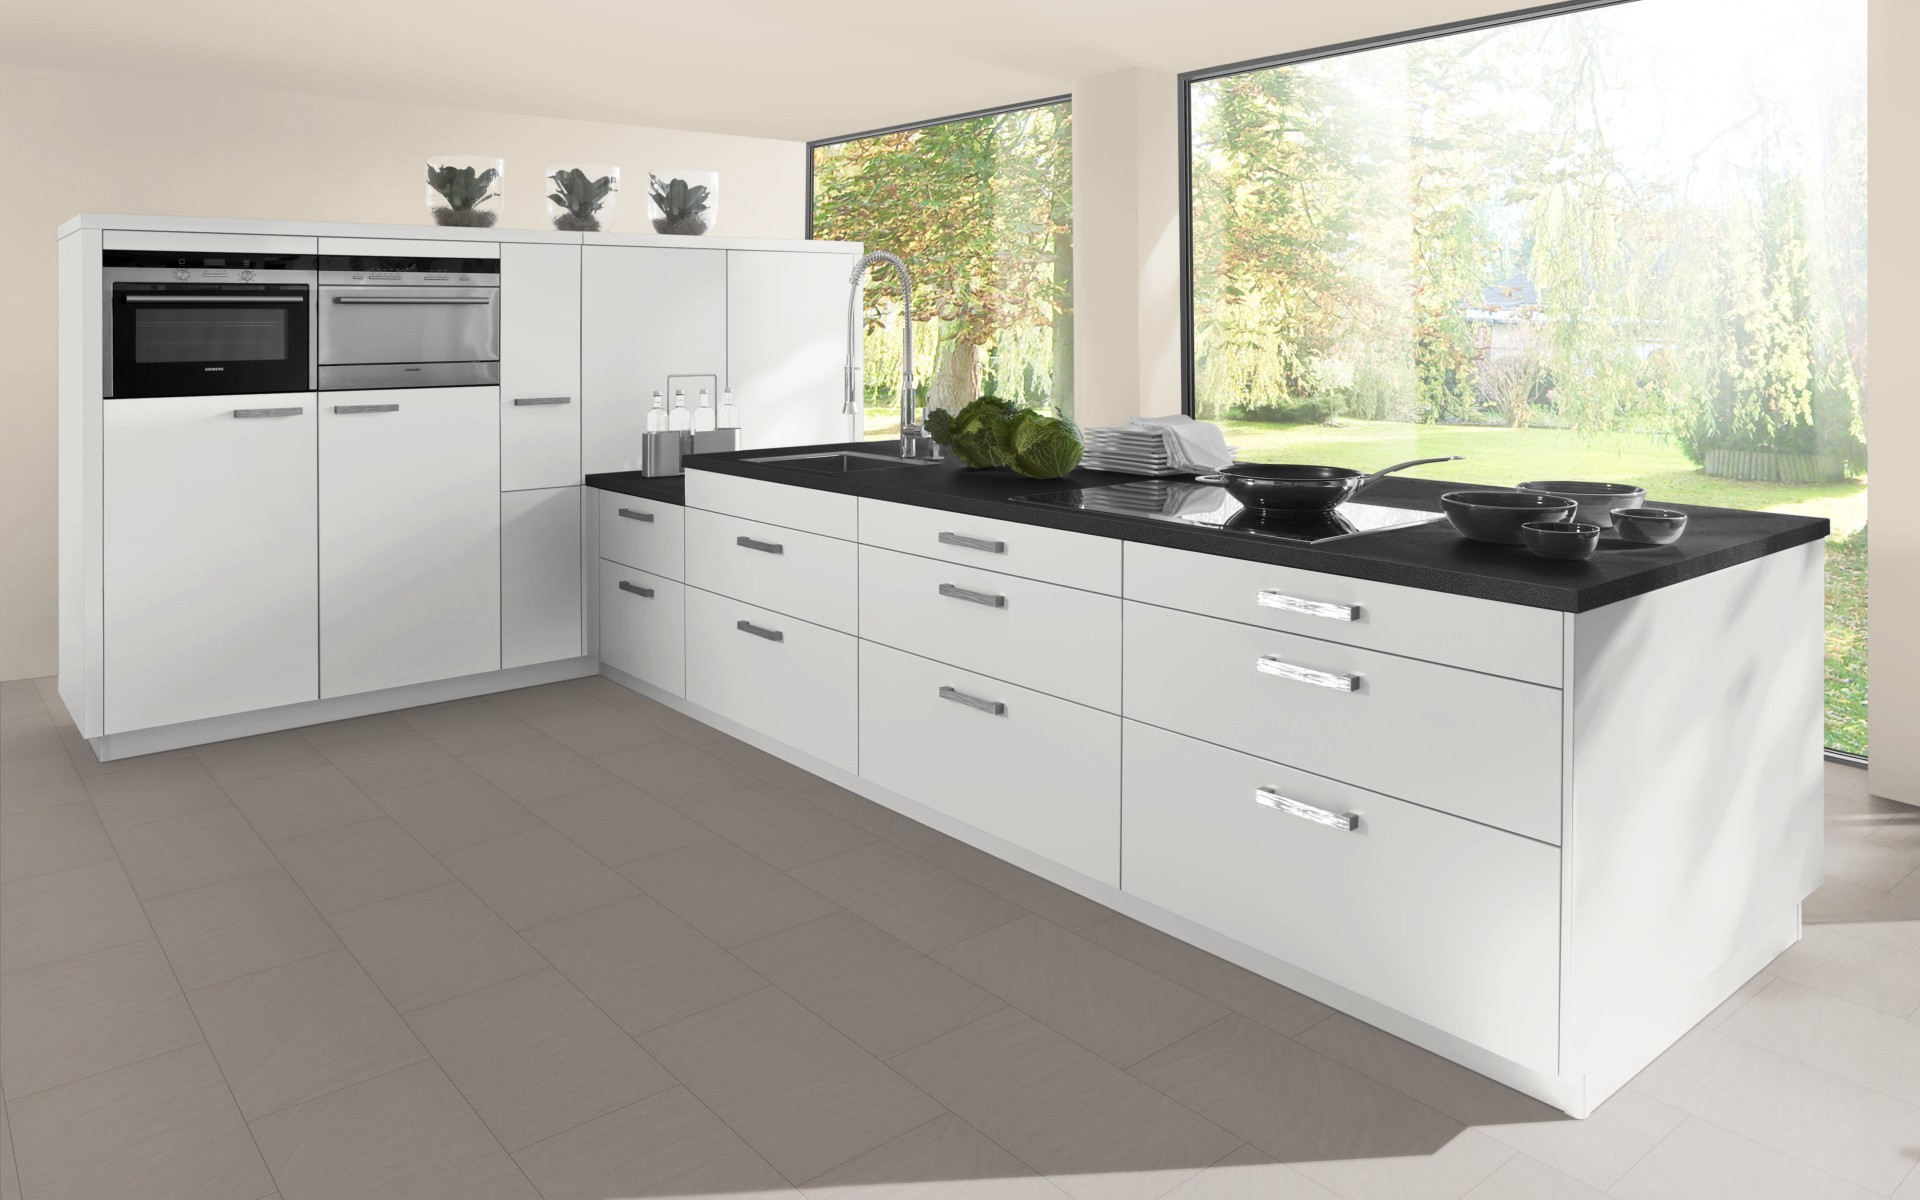 High Gloss - Fully Integrated Appliance Door | Trade